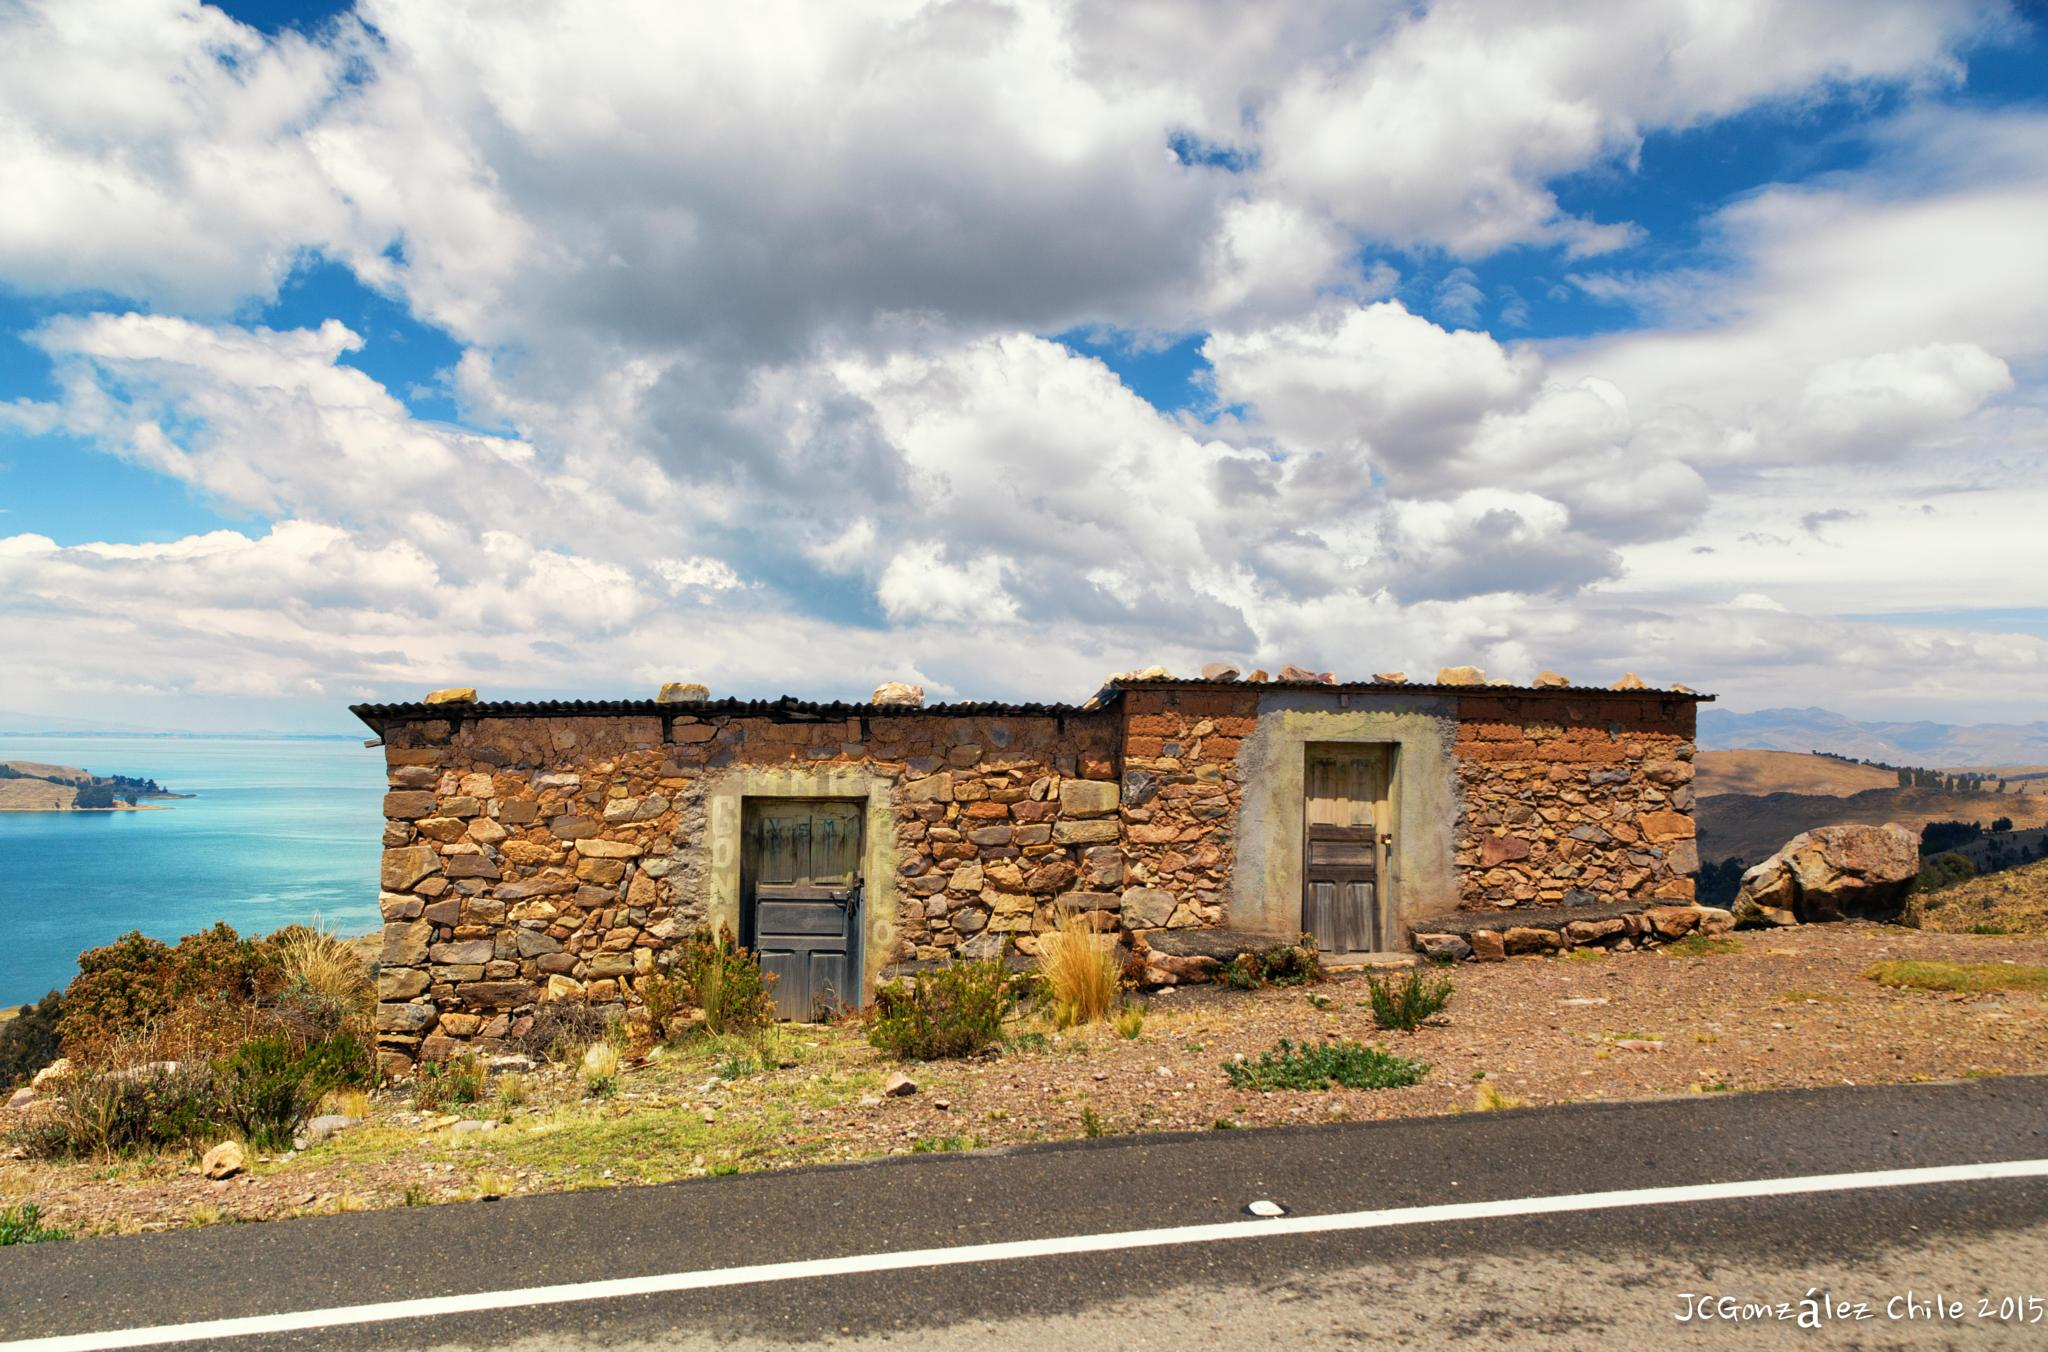 A nice stone house at Titicaca Lake by JuanCaPhotography